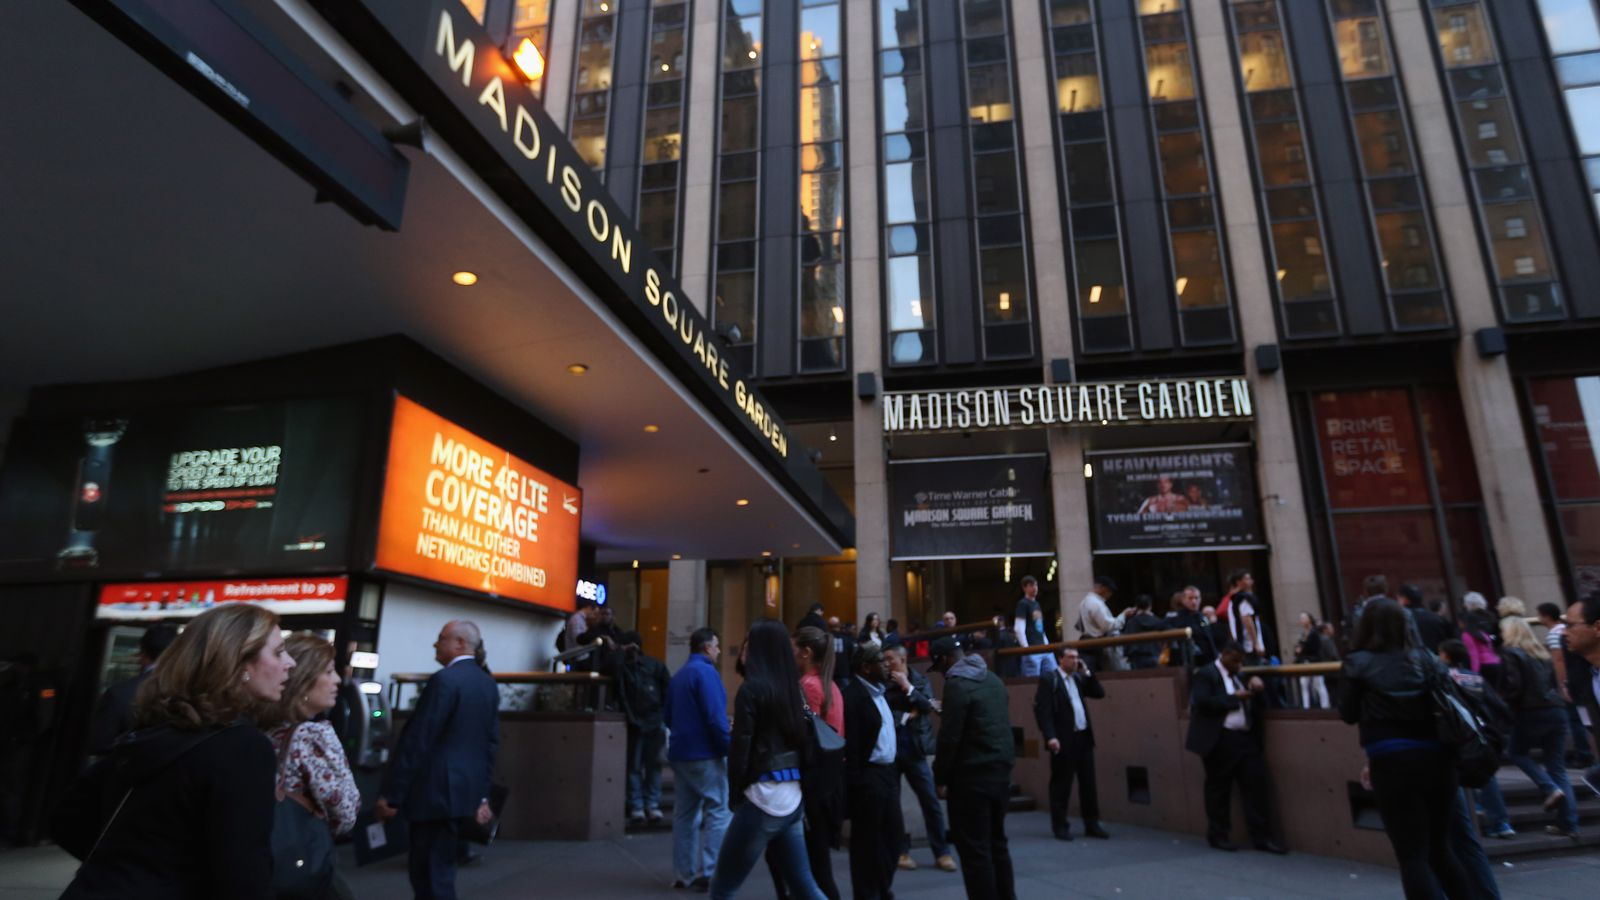 What to eat at madison square garden 2016 edition eater ny - Restaurant near madison square garden ...